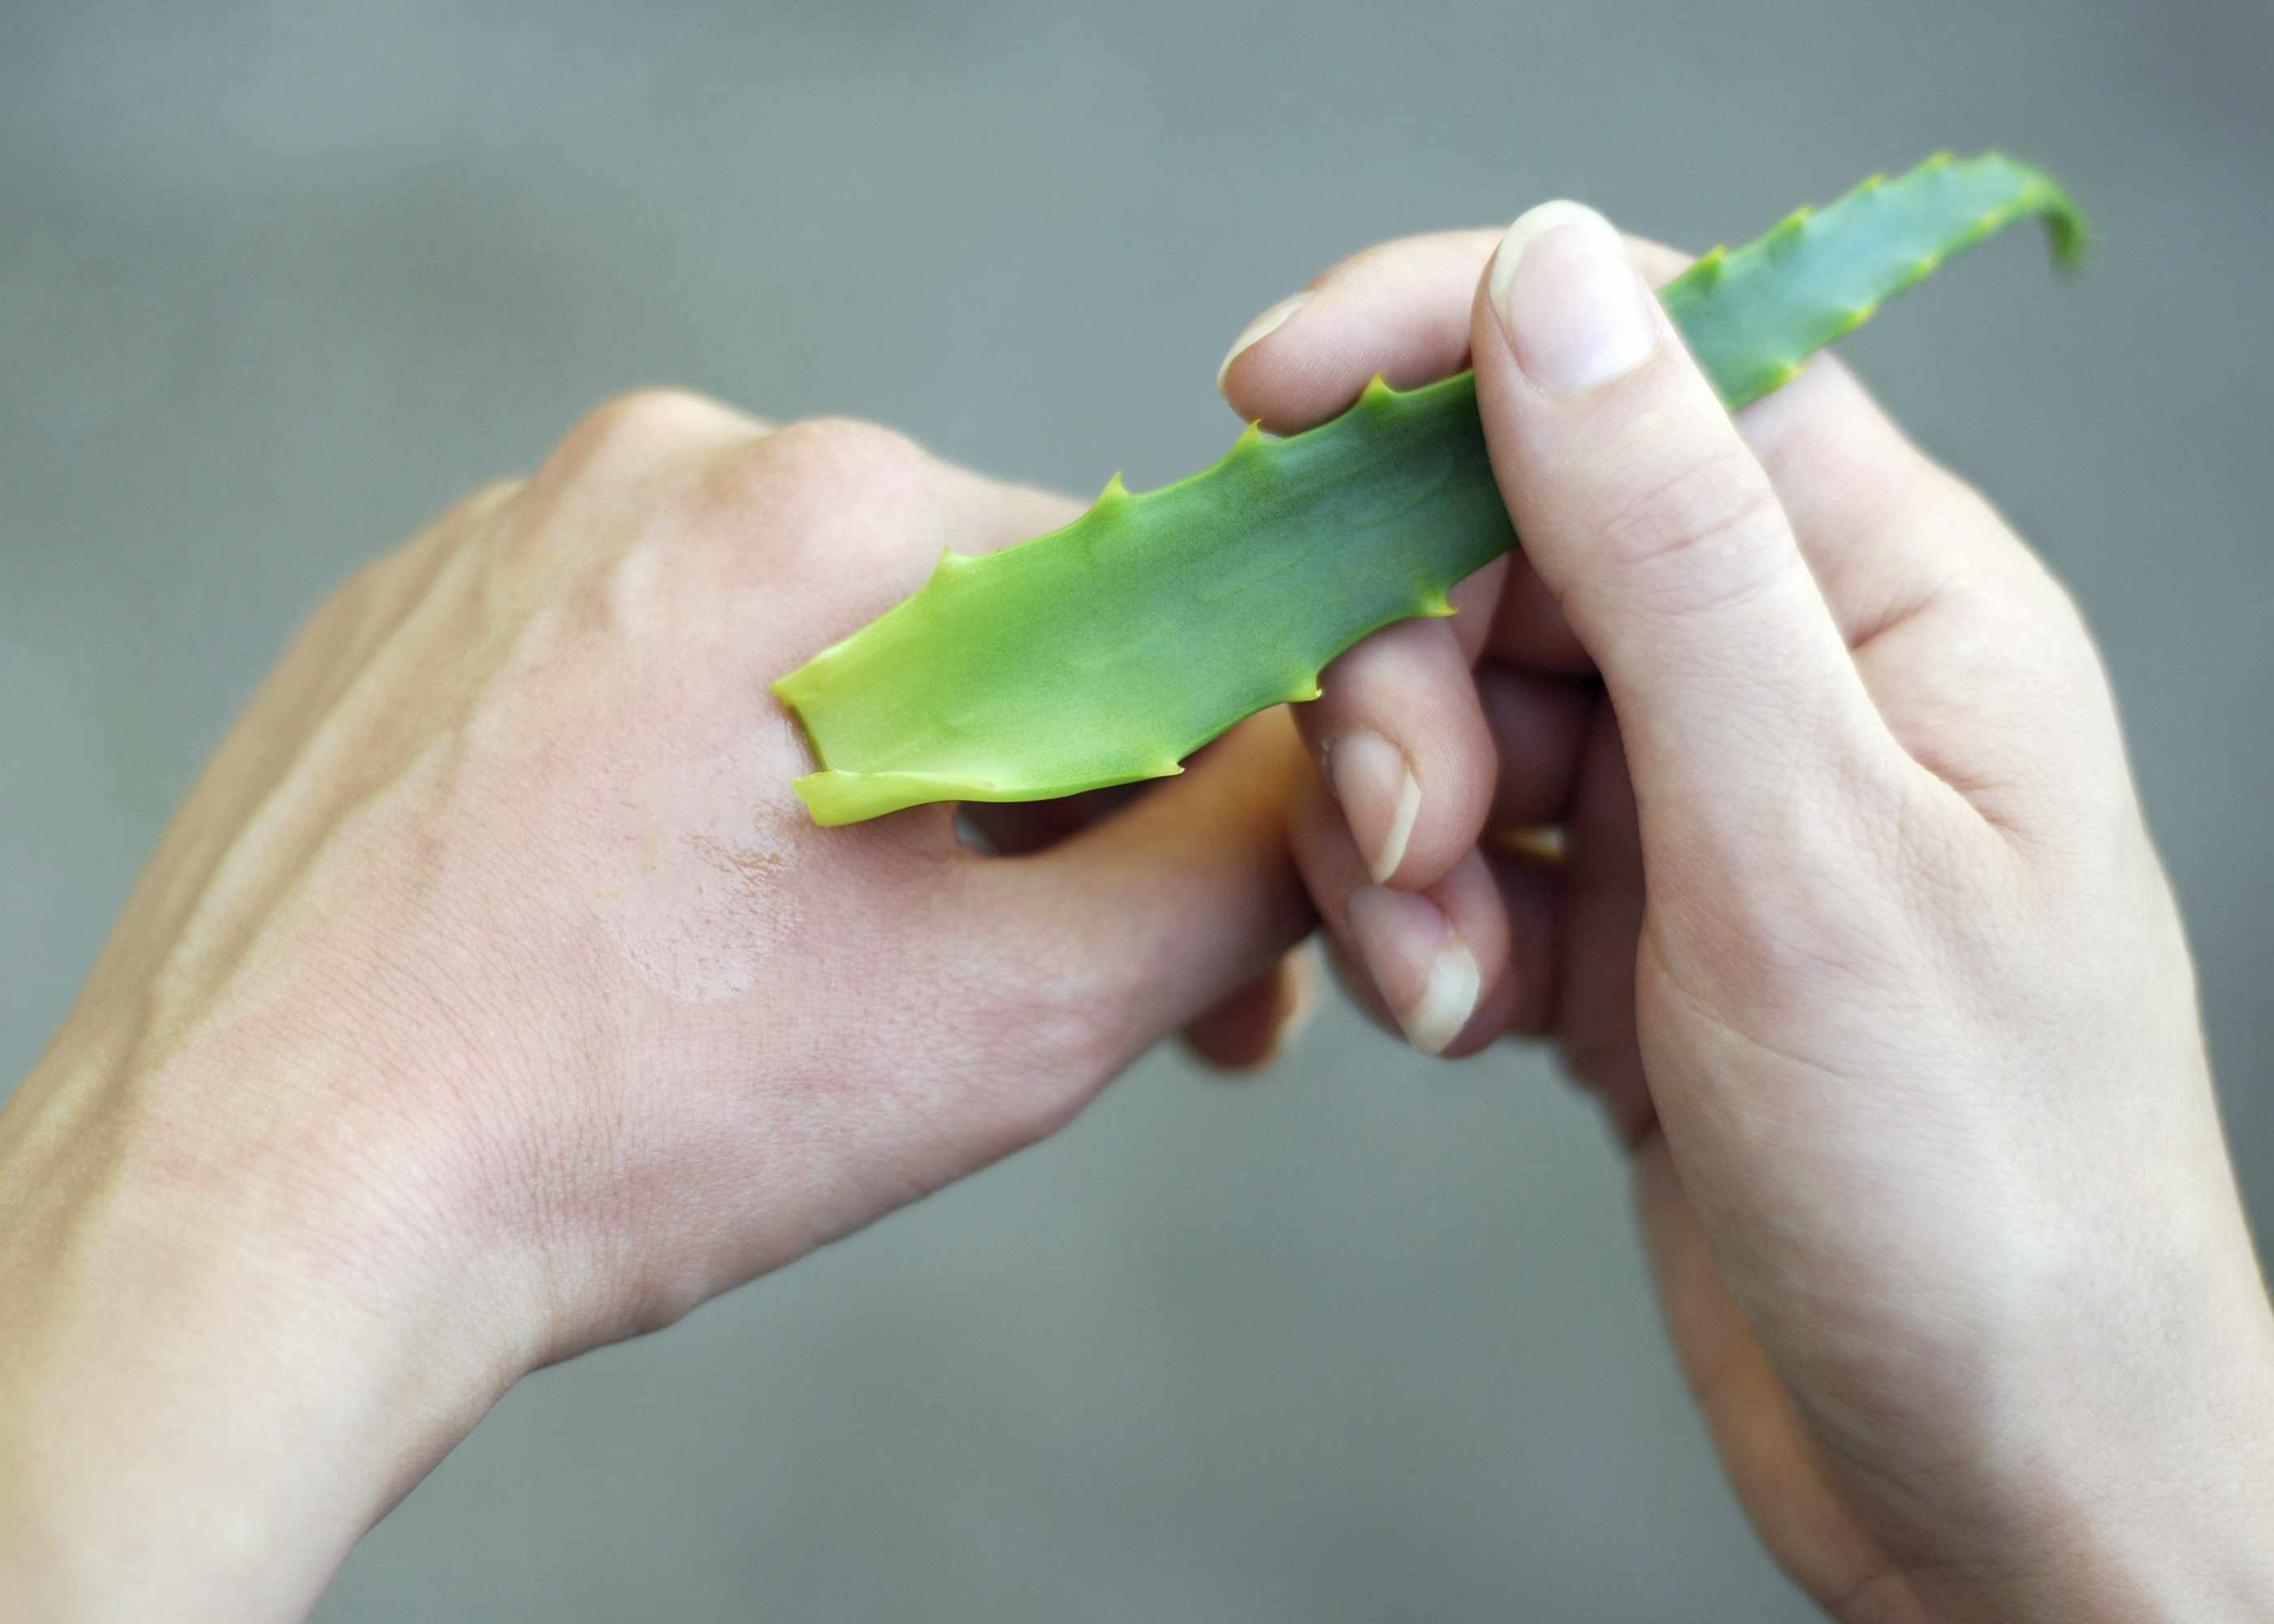 Someone putting aloe vera on their hand to treat a burn